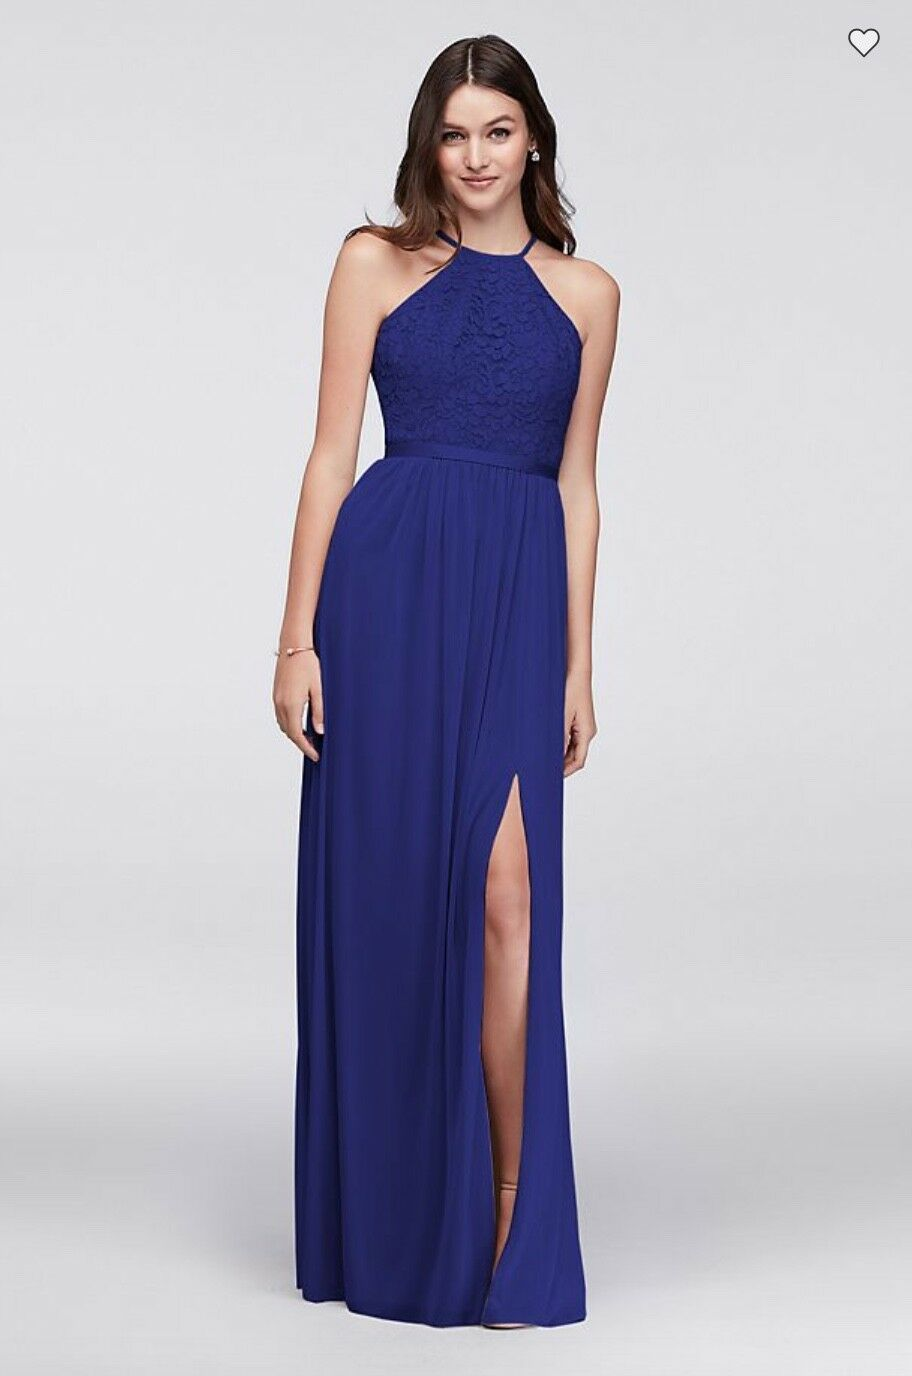 Formal Navy bluee Evening Dress Dress Dress Elegant Brand New with Tags David's Bridal Gown 27c5c8